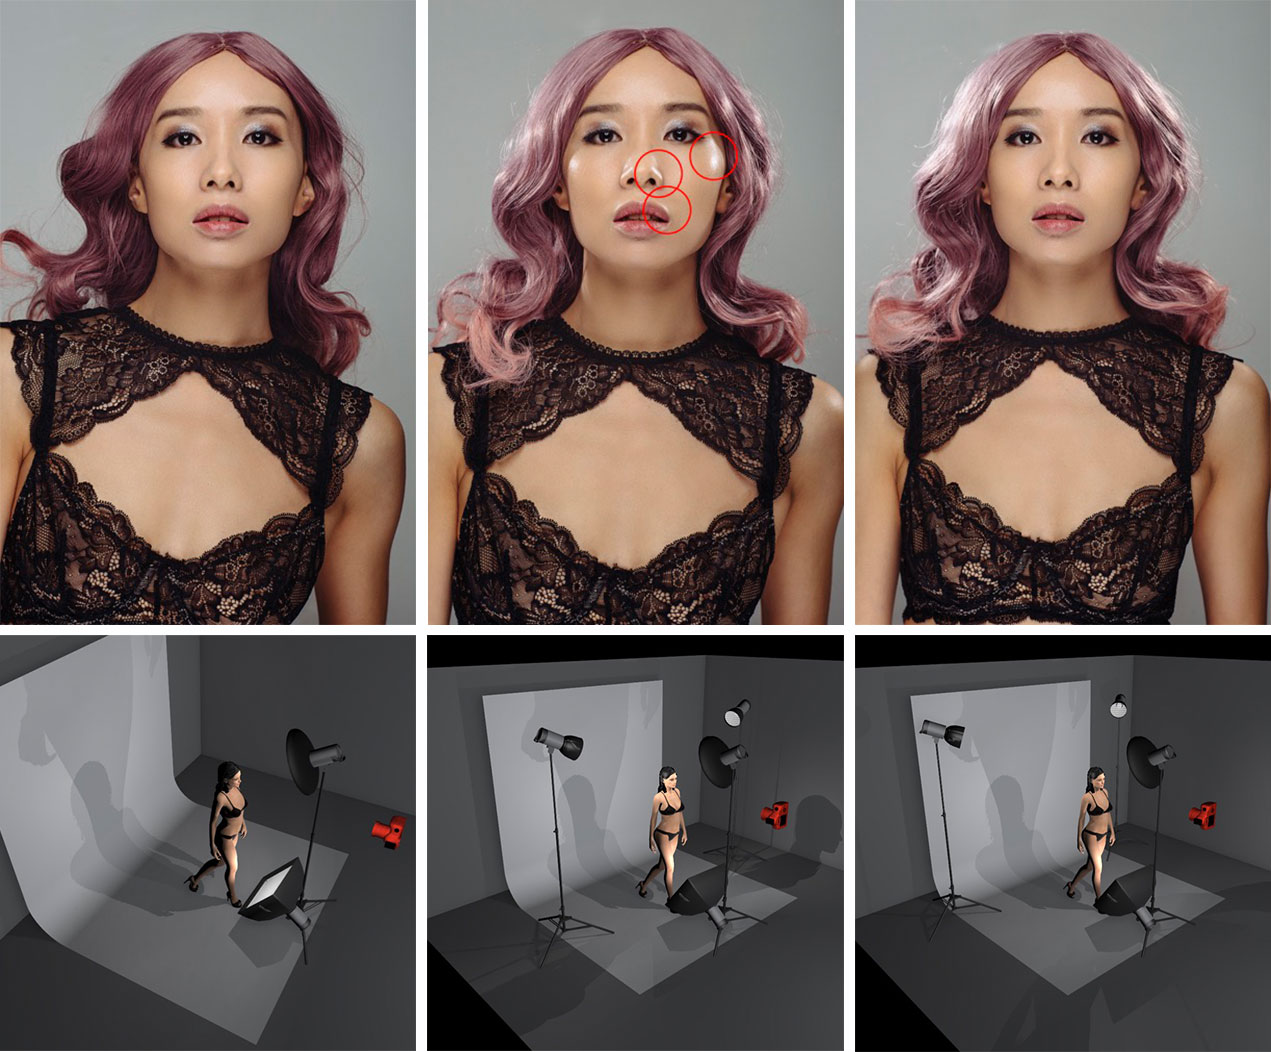 Jake Hicks - Common Lighting Mistakes in Portrait Photography - Poor Hairlight Placement